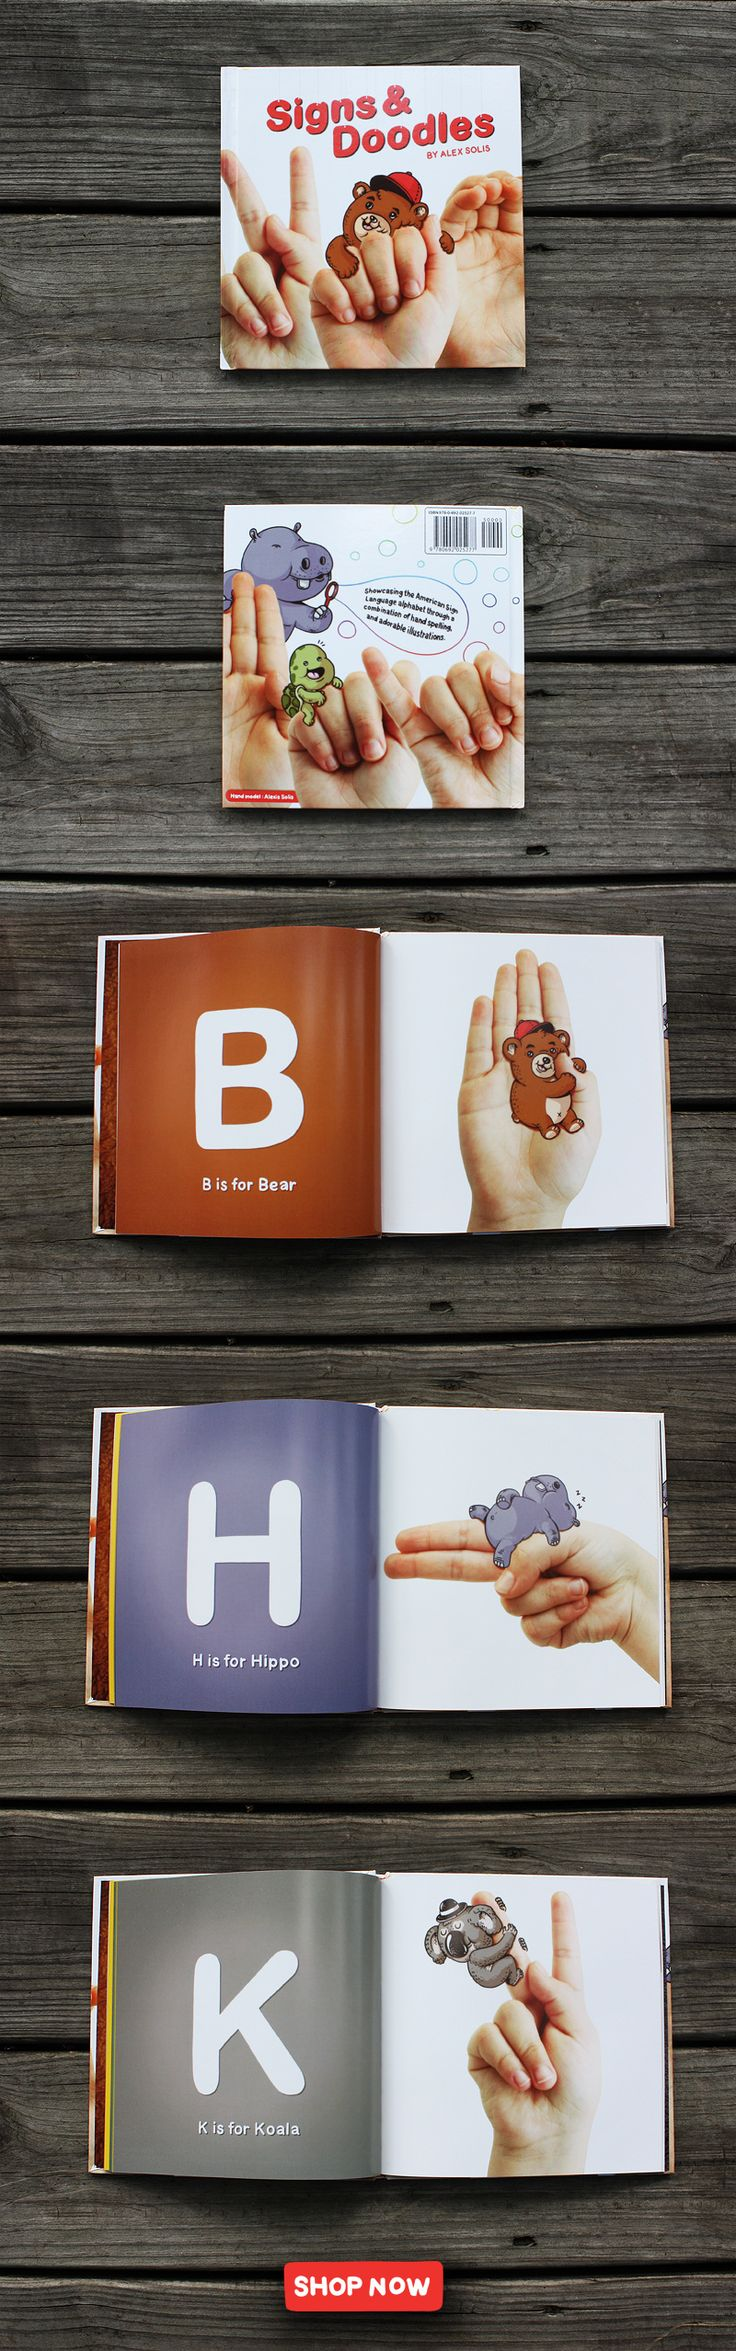 I am so excited about this Book!  Bright large letters and the kids are able to place their hand against the image to practice the Sign!  Much respect for this Artist